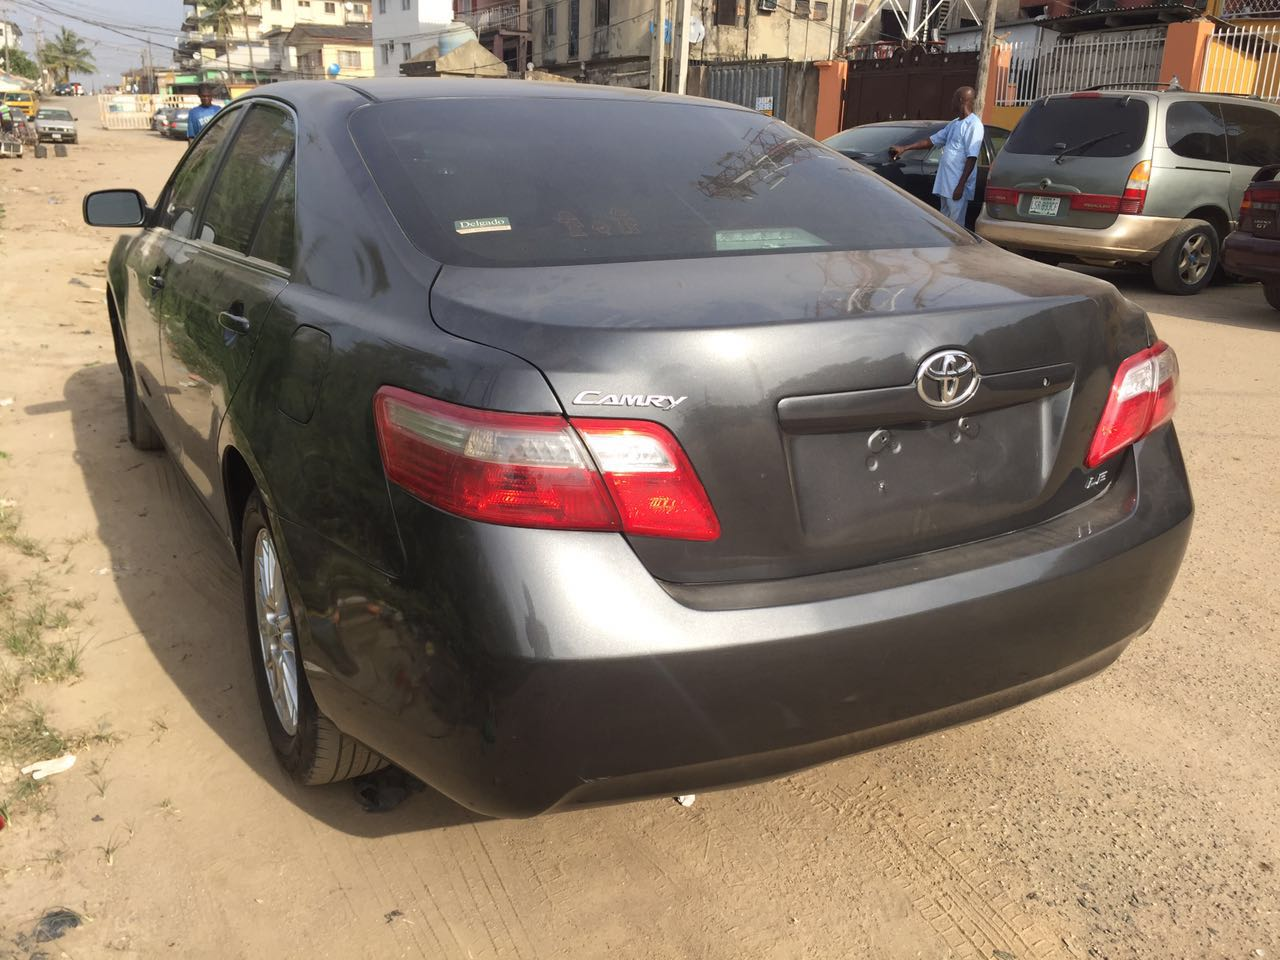 sold extremely clean 2008 toyota camry leather seats alloy bubble headlights autos nigeria. Black Bedroom Furniture Sets. Home Design Ideas